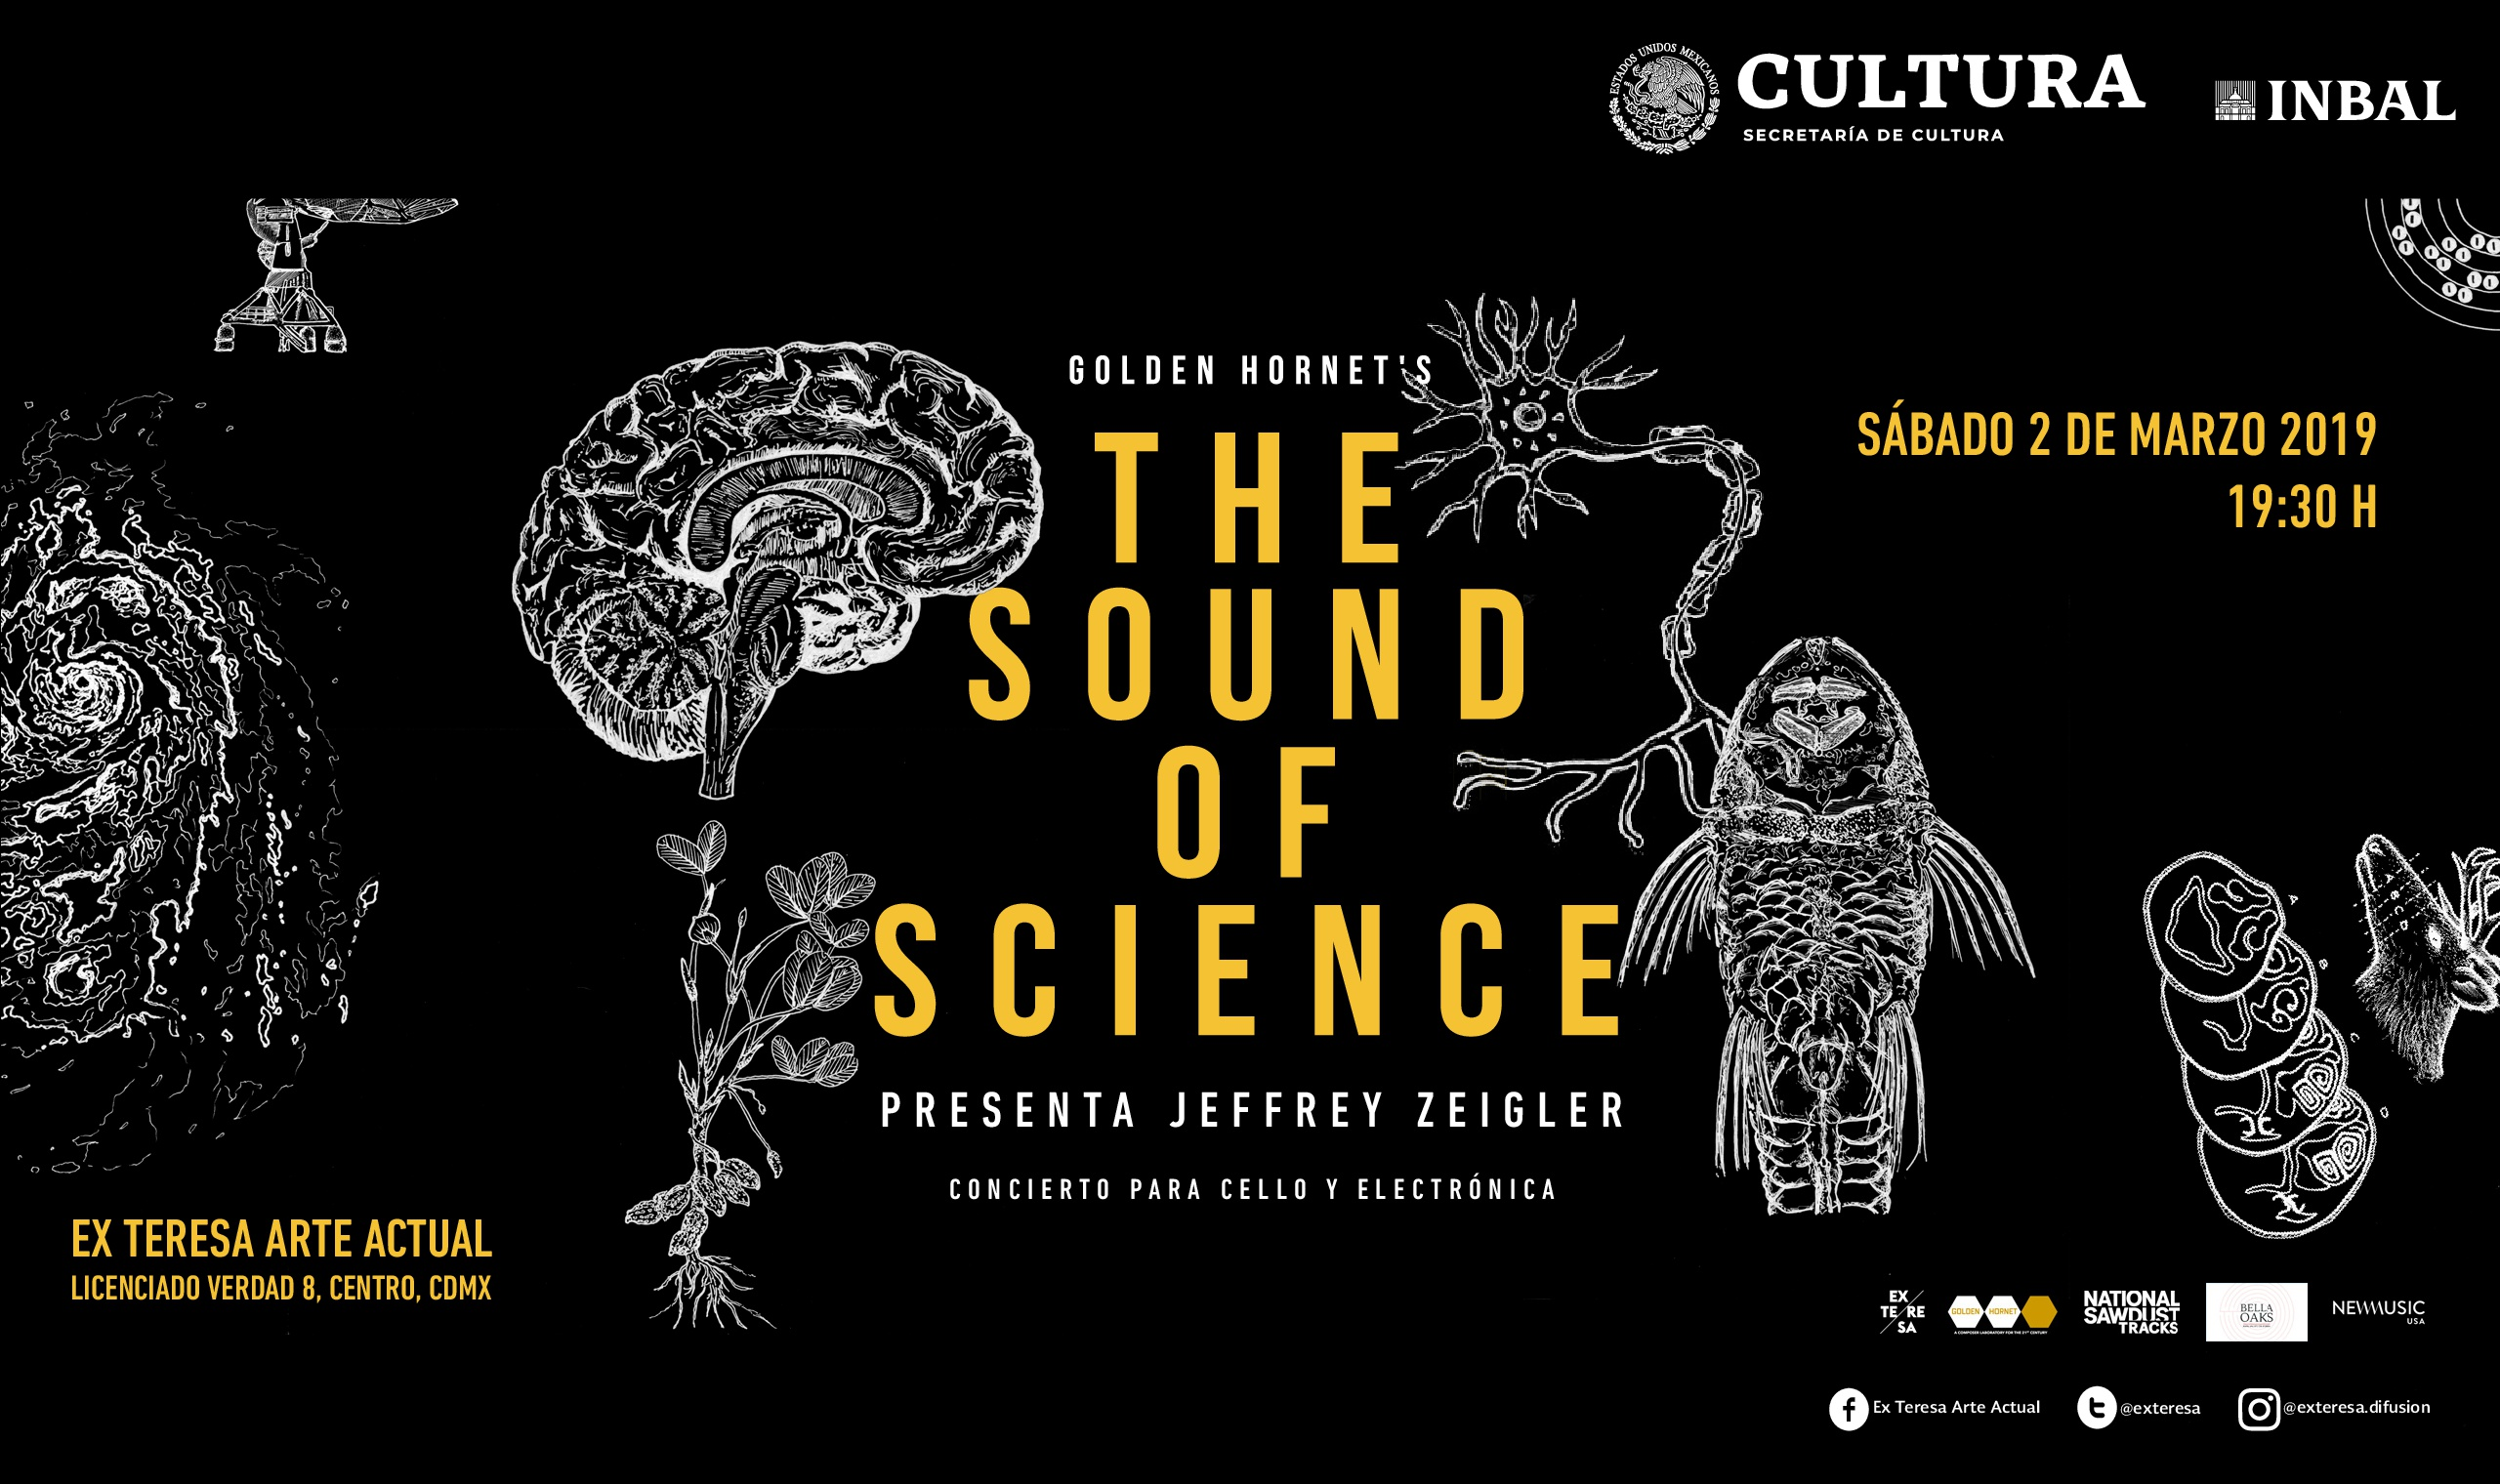 Ex Teresa Arte Actual The Sound Of Science